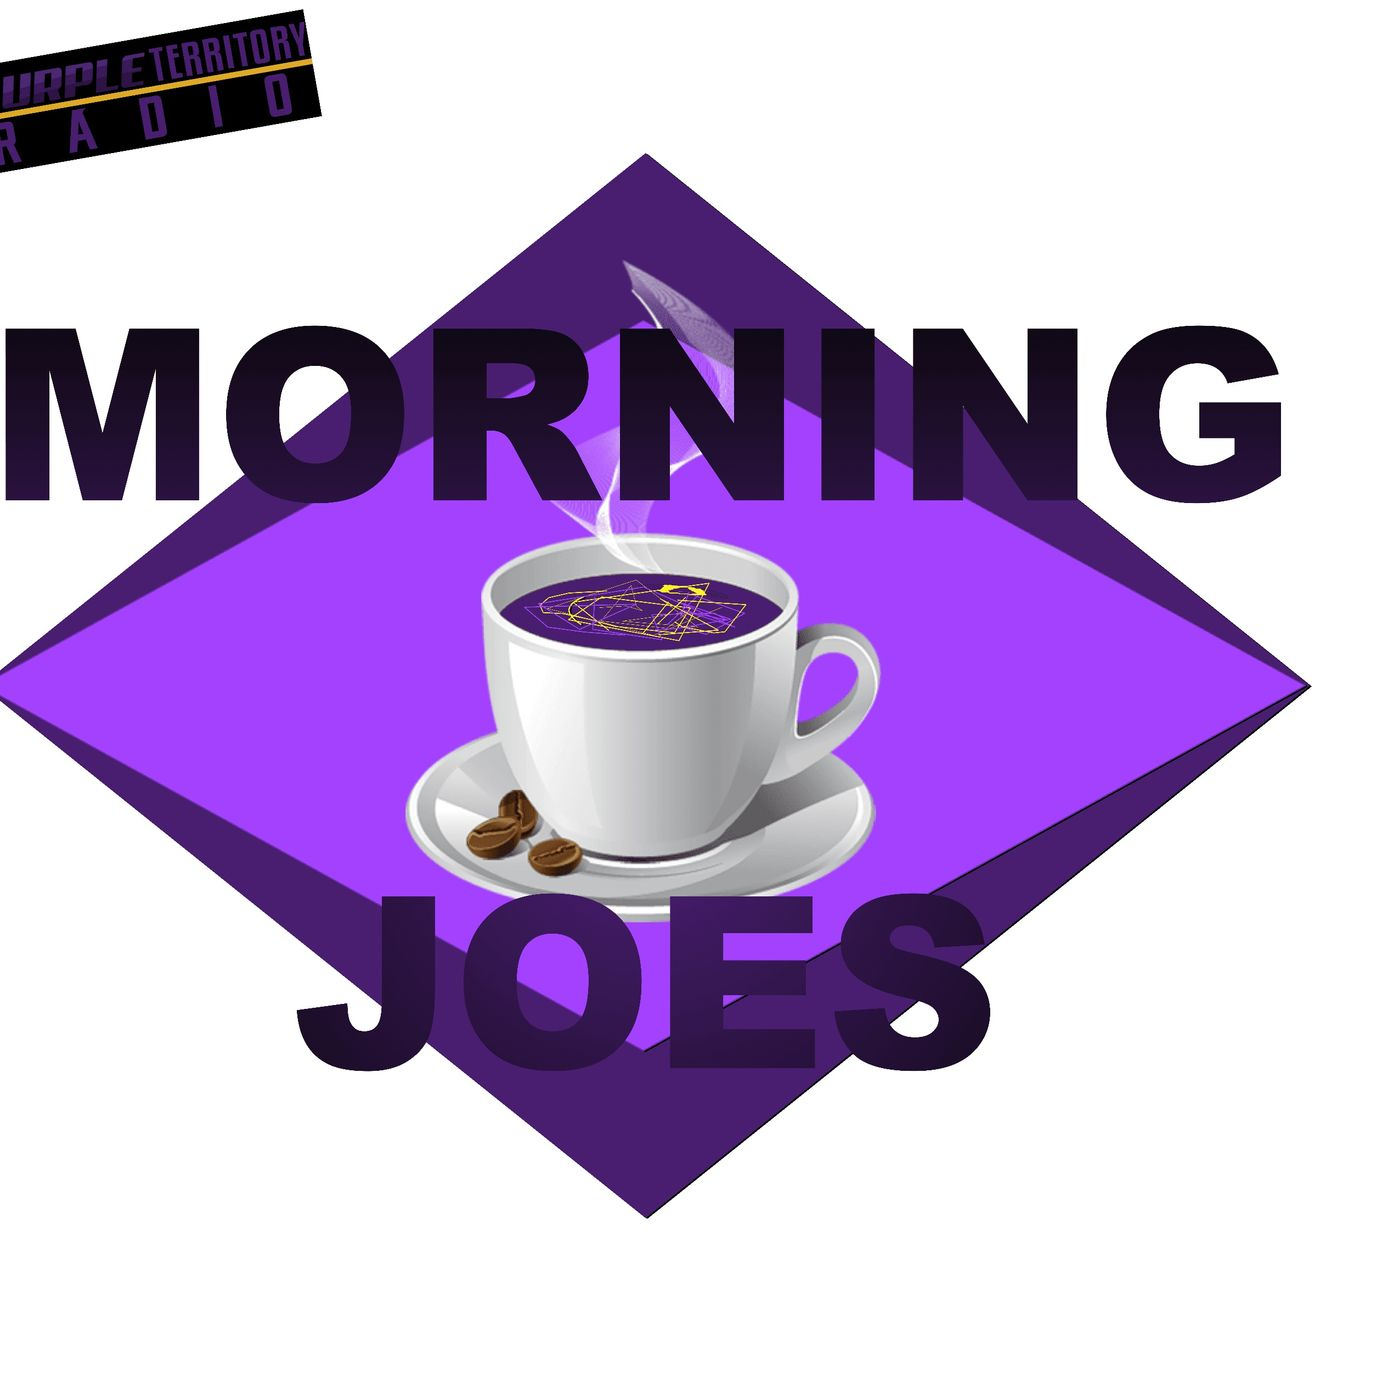 Morning Joes - Playoff Dreams Deferred